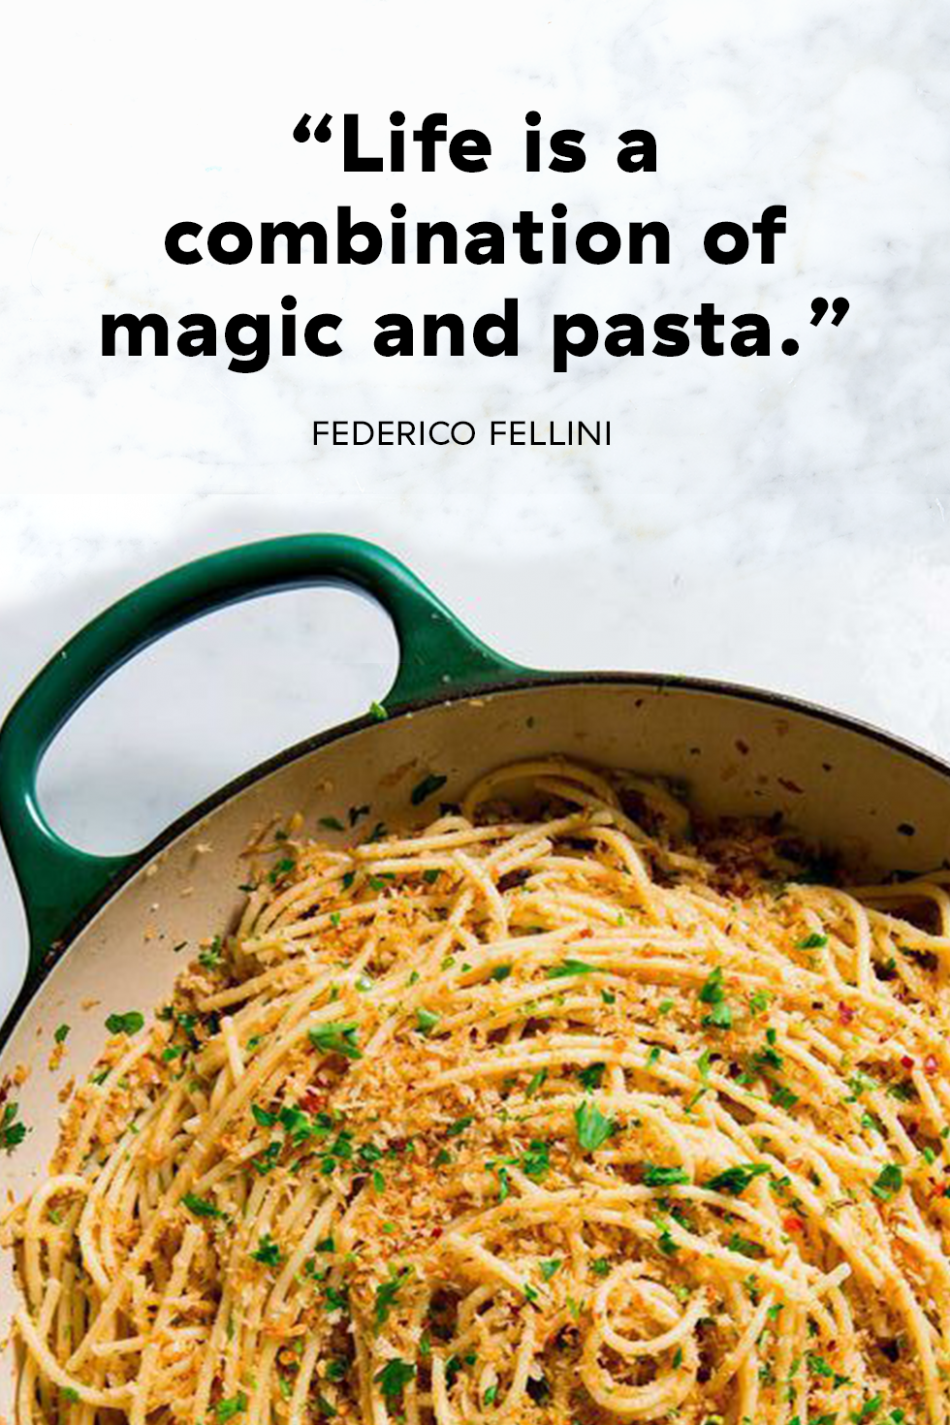 9 Best Food Quotes From Famous Chefs – Great Sayings About …